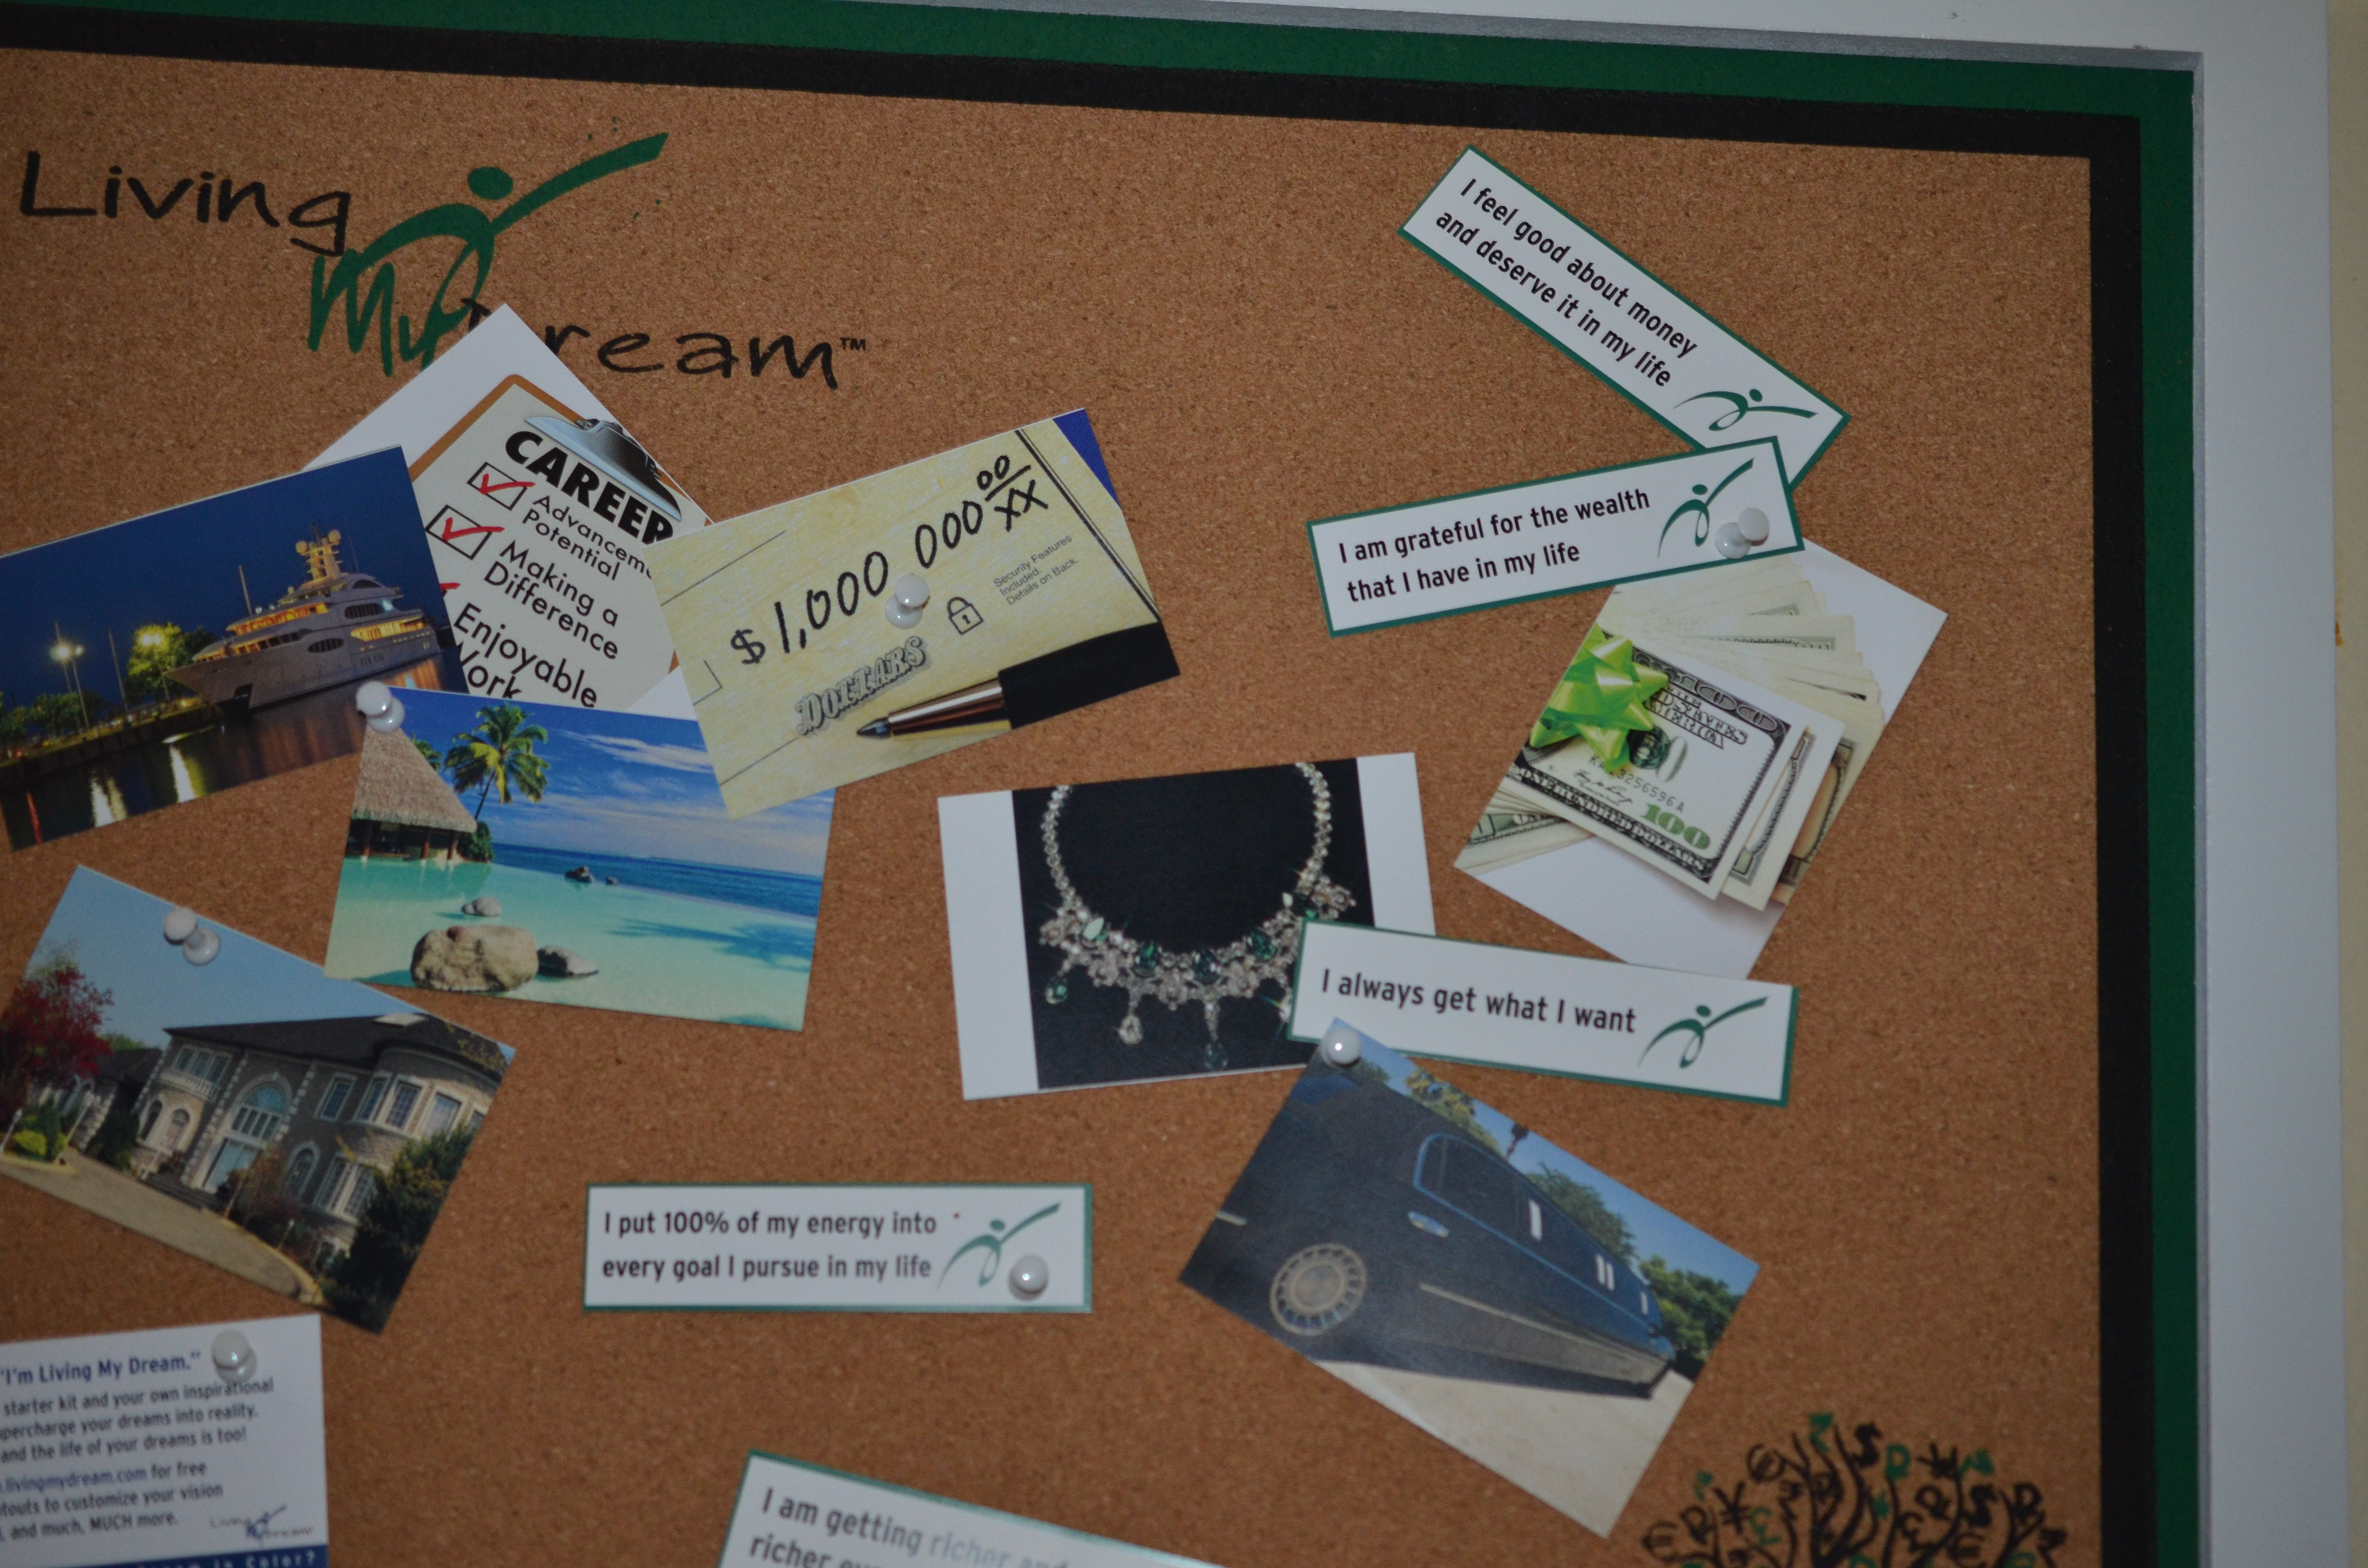 Win a LivingMyDream Vision Board